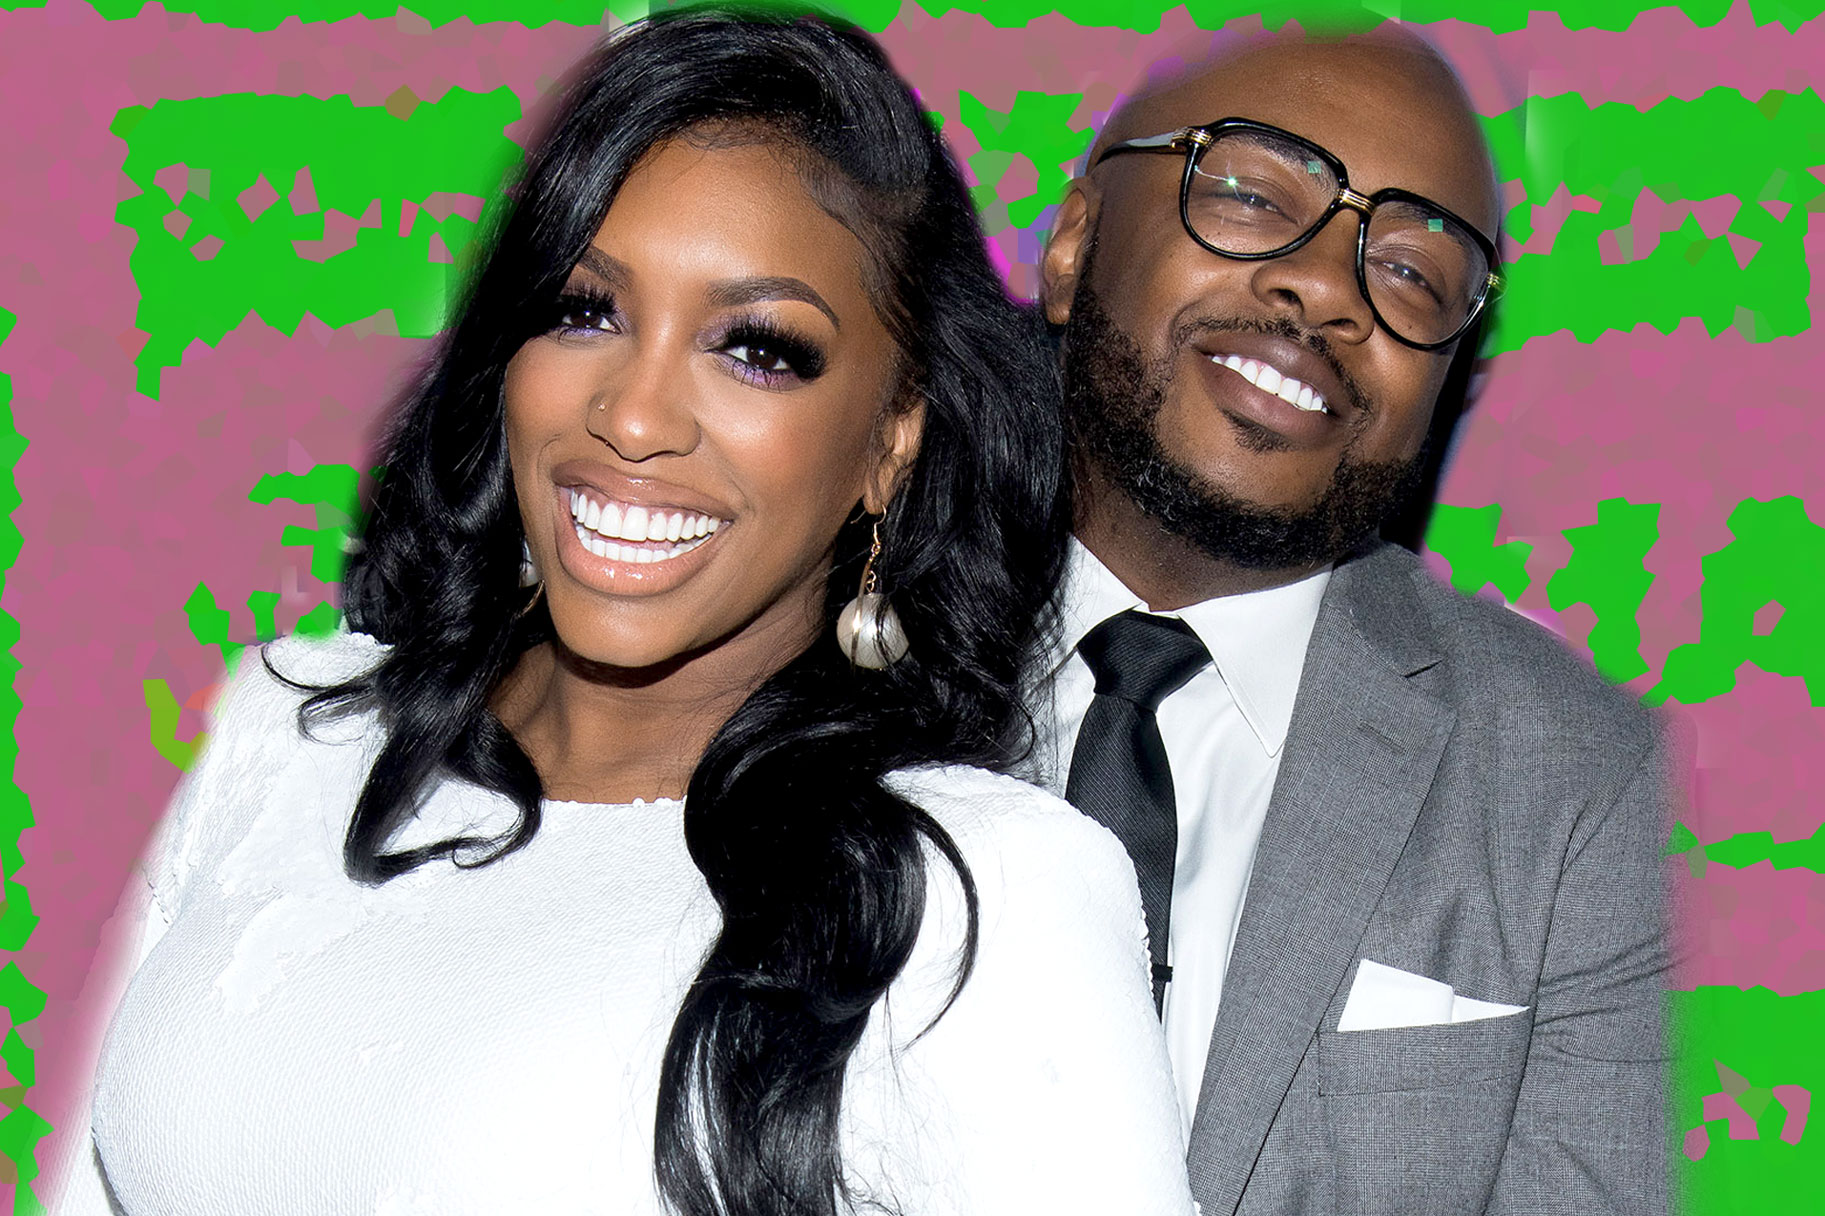 Porsha Williams And Dennis McKinley Offer Fans Their Gratitude For All The Support They Received - People Have A Petition In Mind; Find Out What They're Asking Andy Cohen